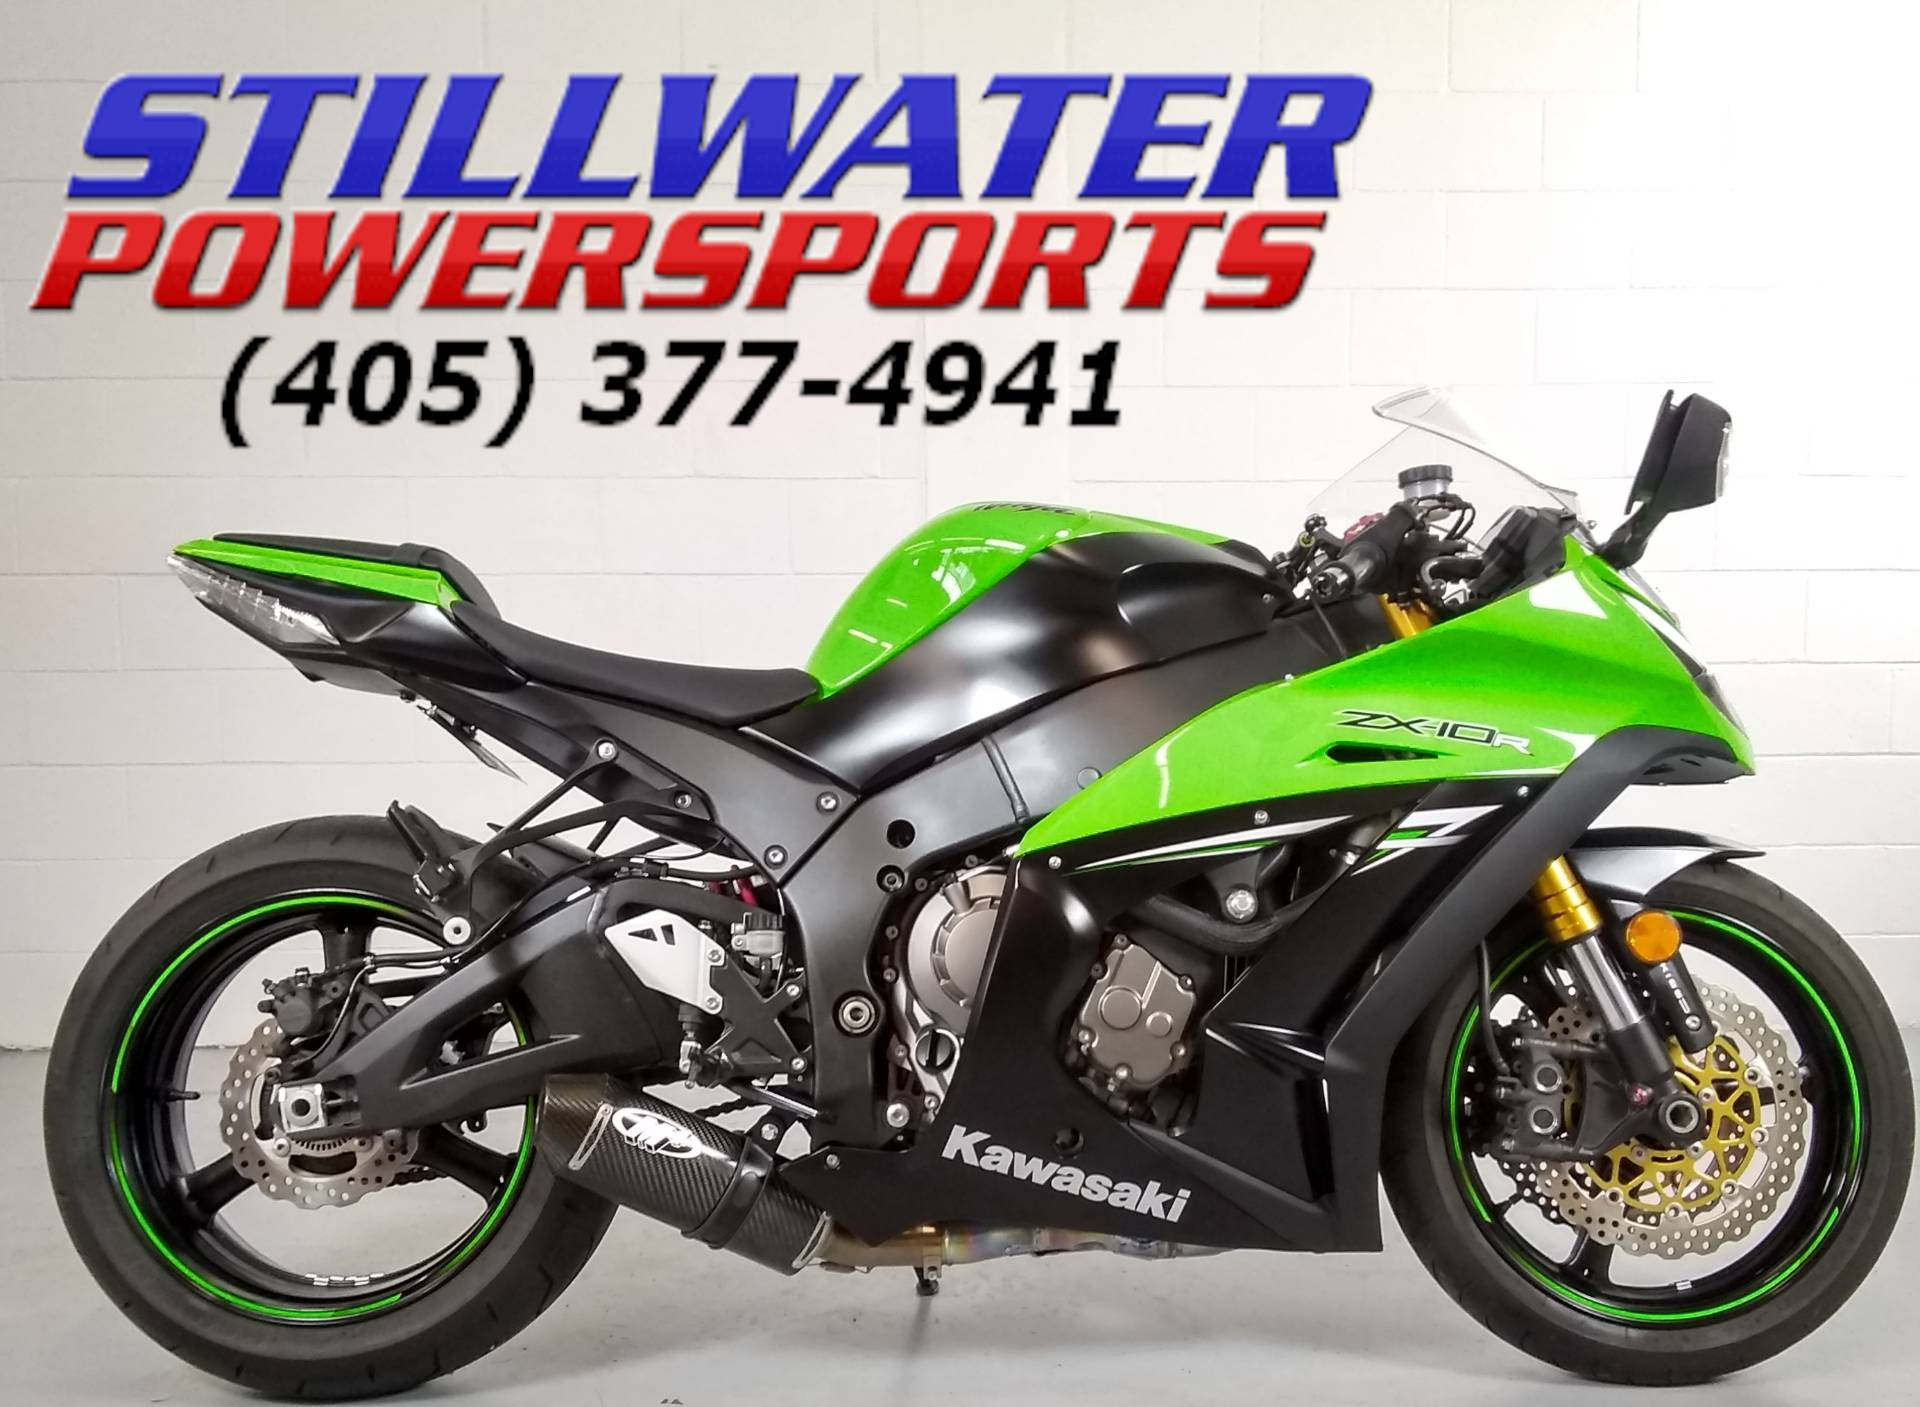 2014 Kawasaki Ninja® ZX™-10R ABS in Stillwater, Oklahoma - Photo 1